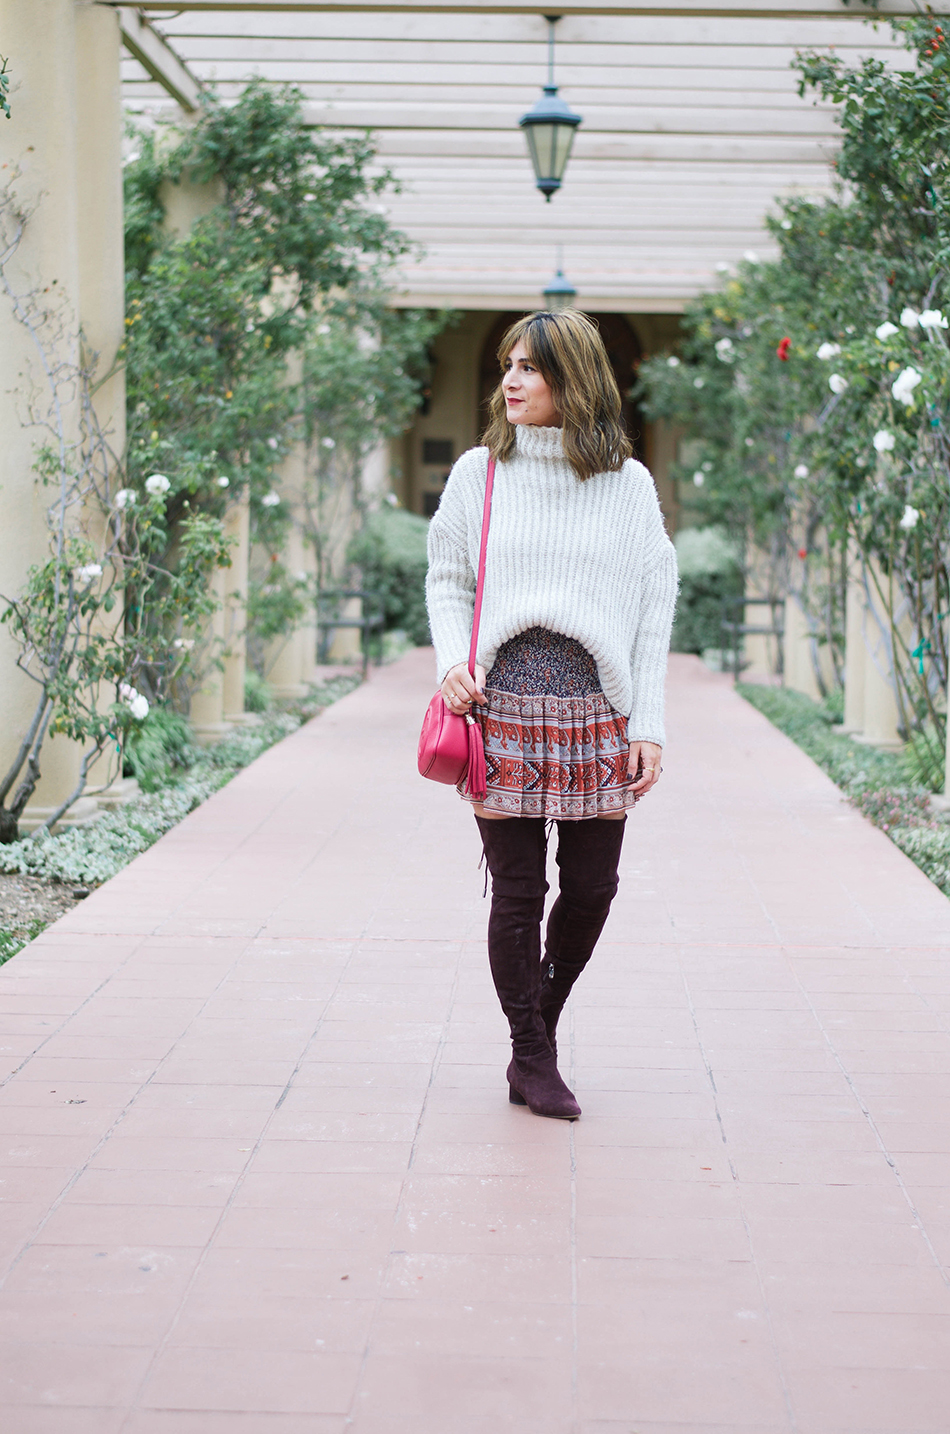 How To Wear A Chunky Sweater And Mini Skirt